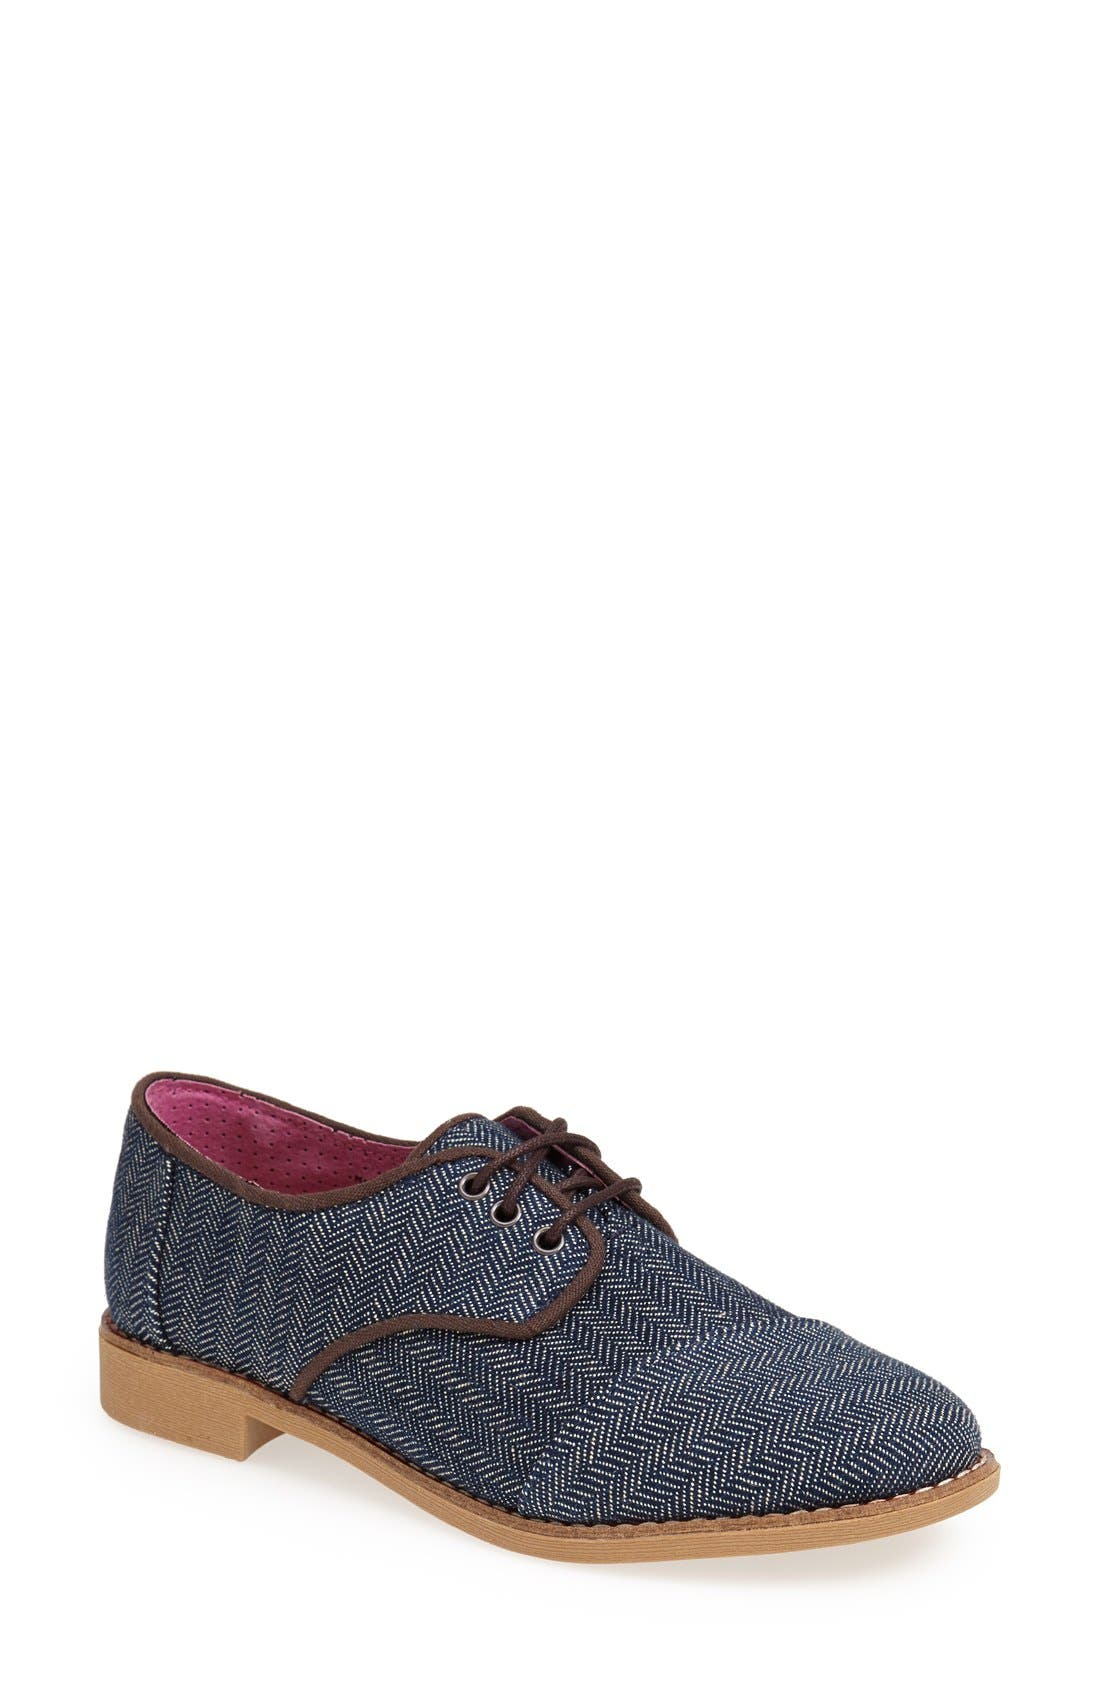 Main Image - TOMS 'Brogue' Oxford (Women)